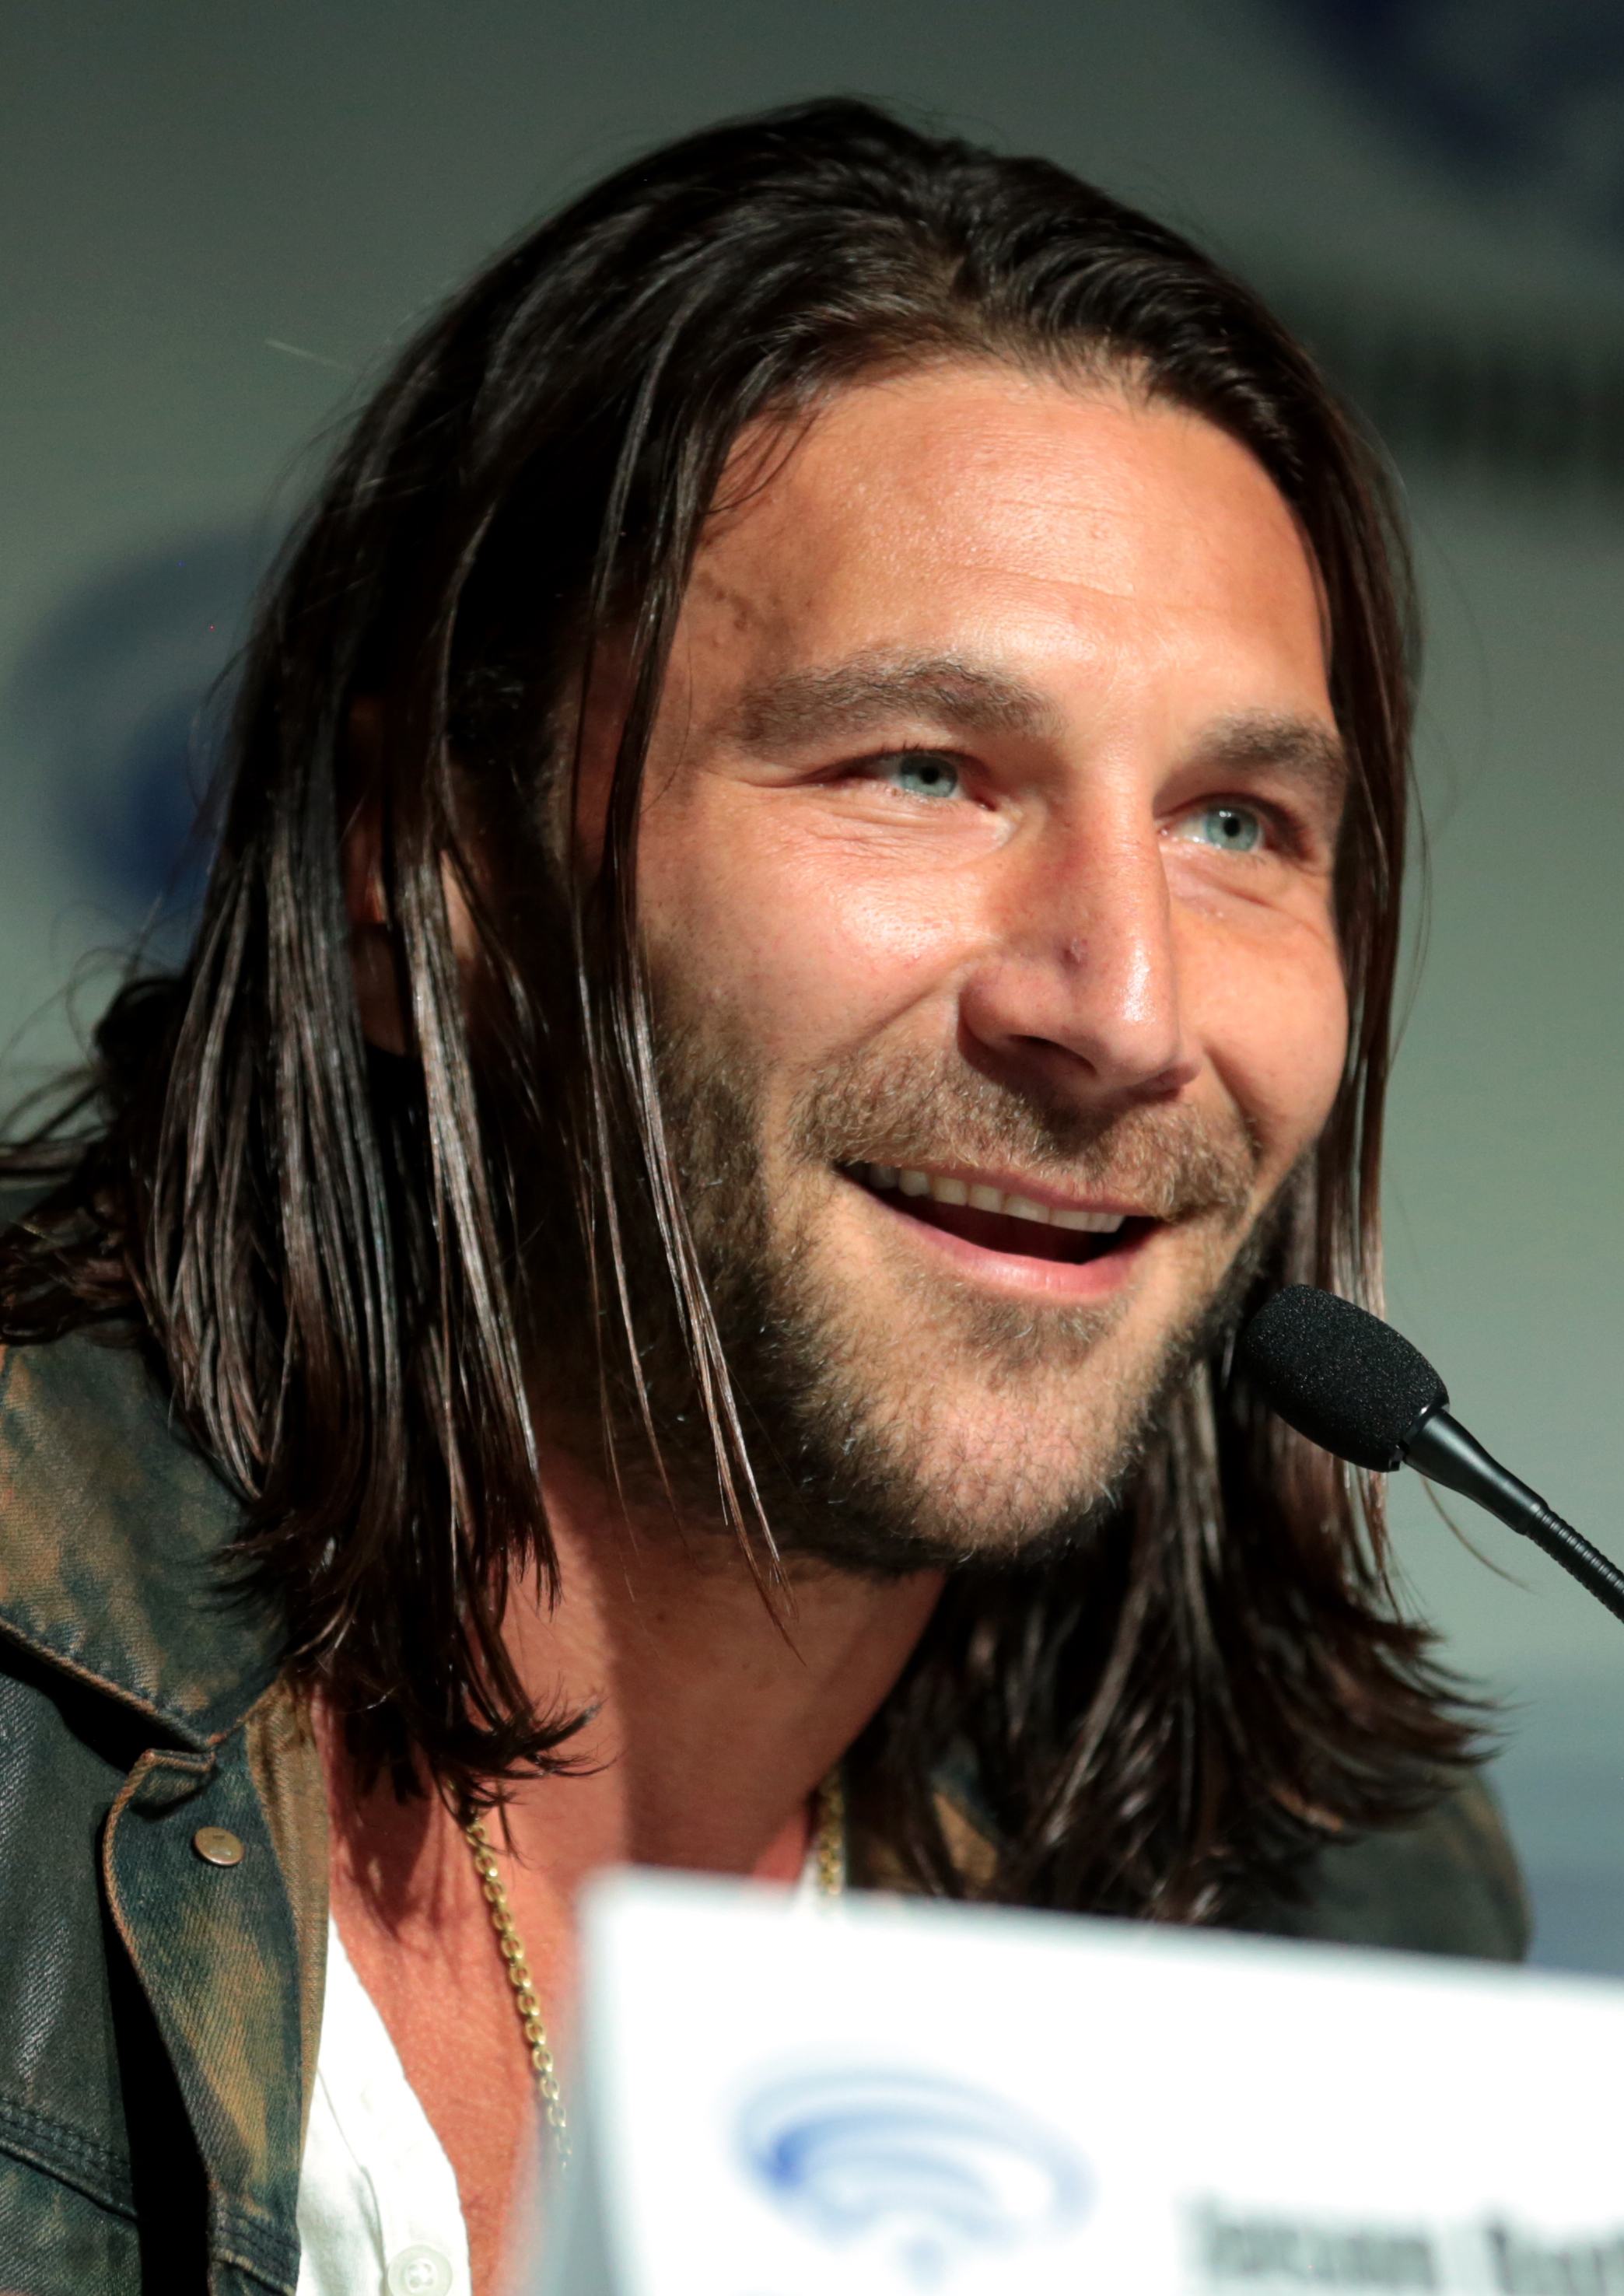 Anarchy Nation Pictures zach mcgowan - wikipedia